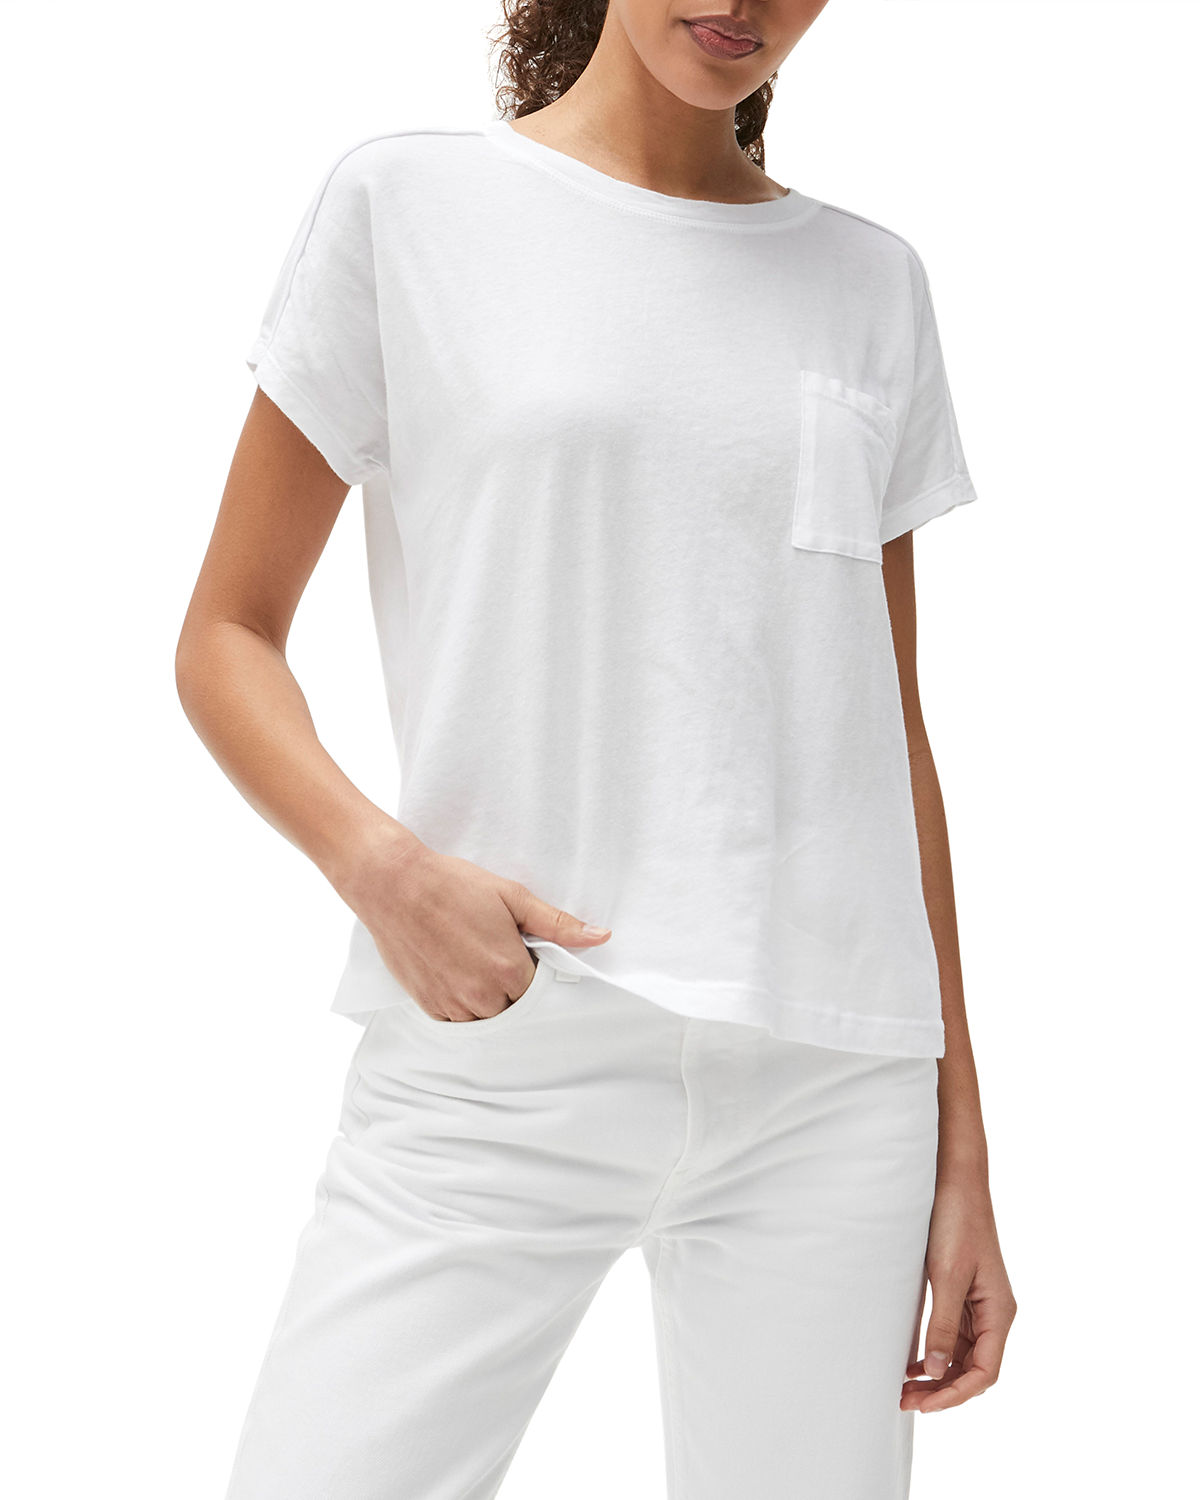 Shiloh Extended Cotton Top